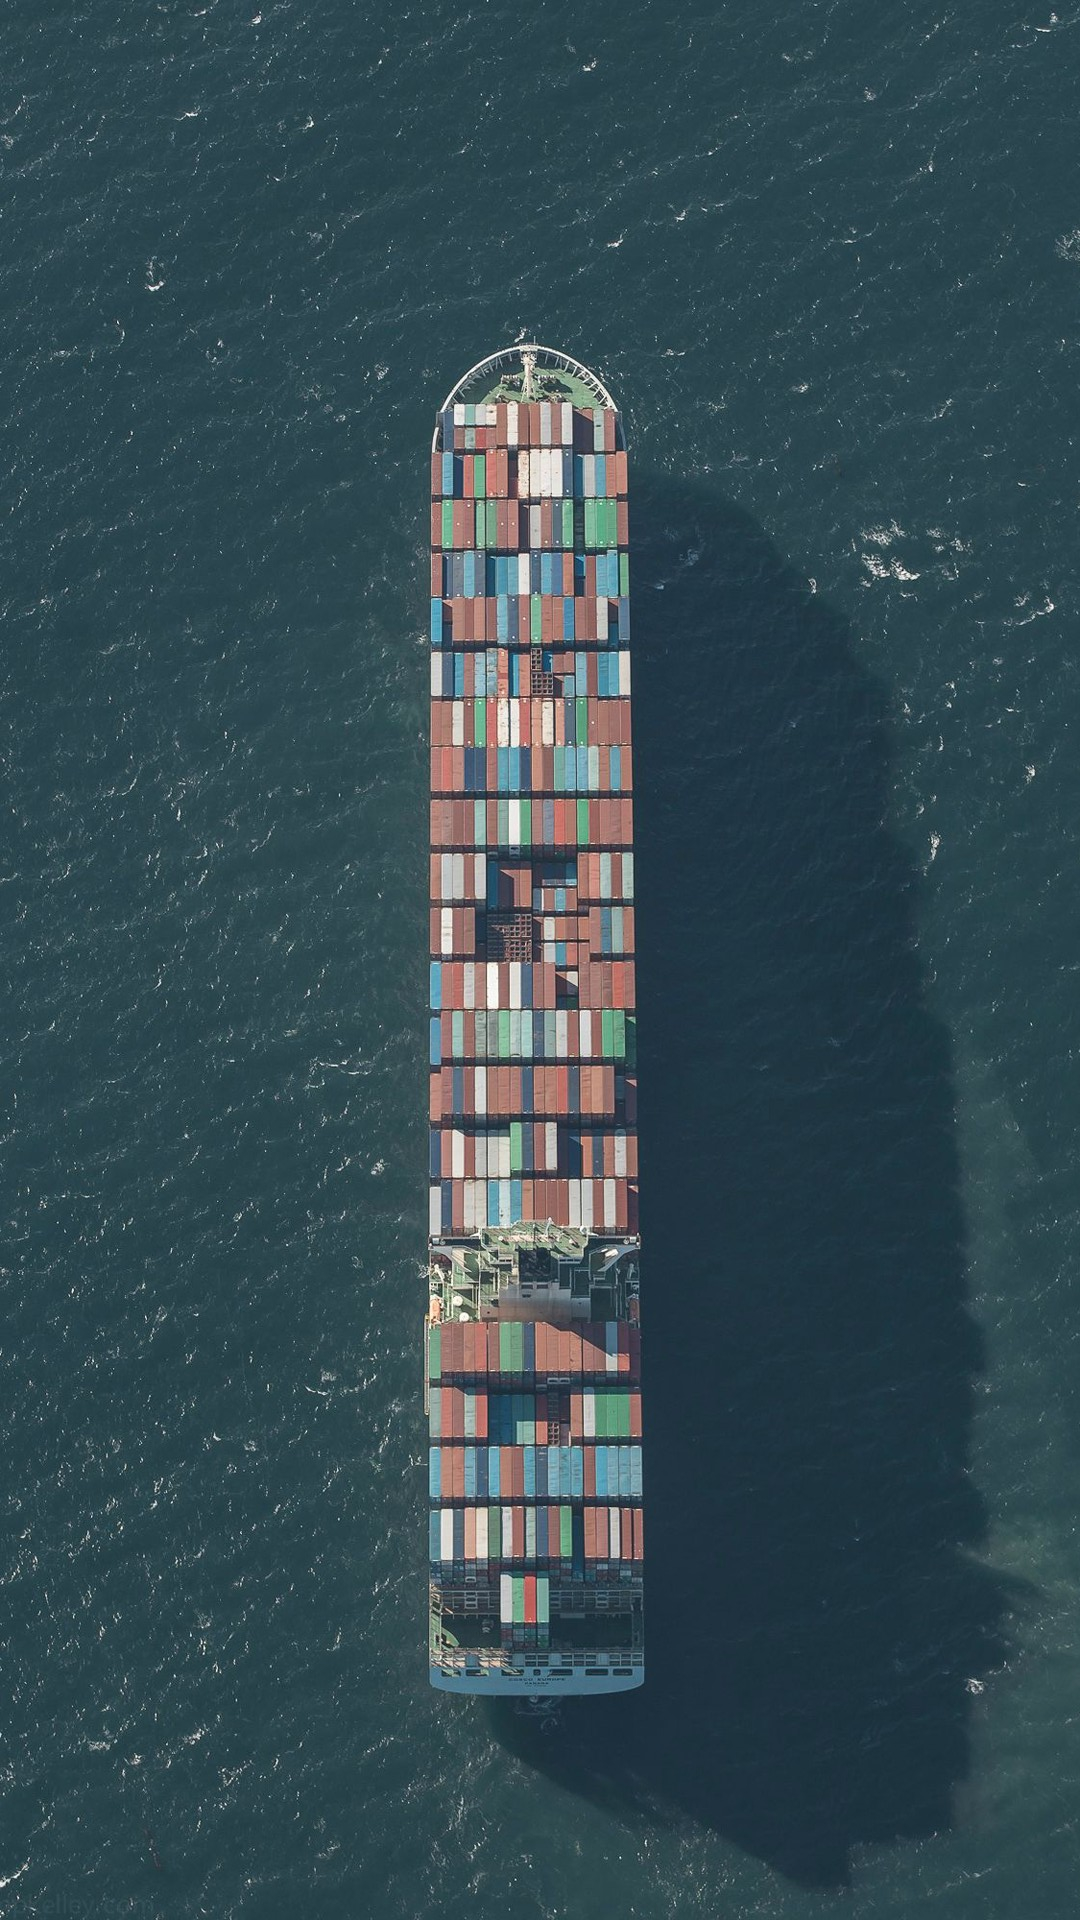 Large Container Ship Minimal iPhone Wallpaper iphoneswallpapers com